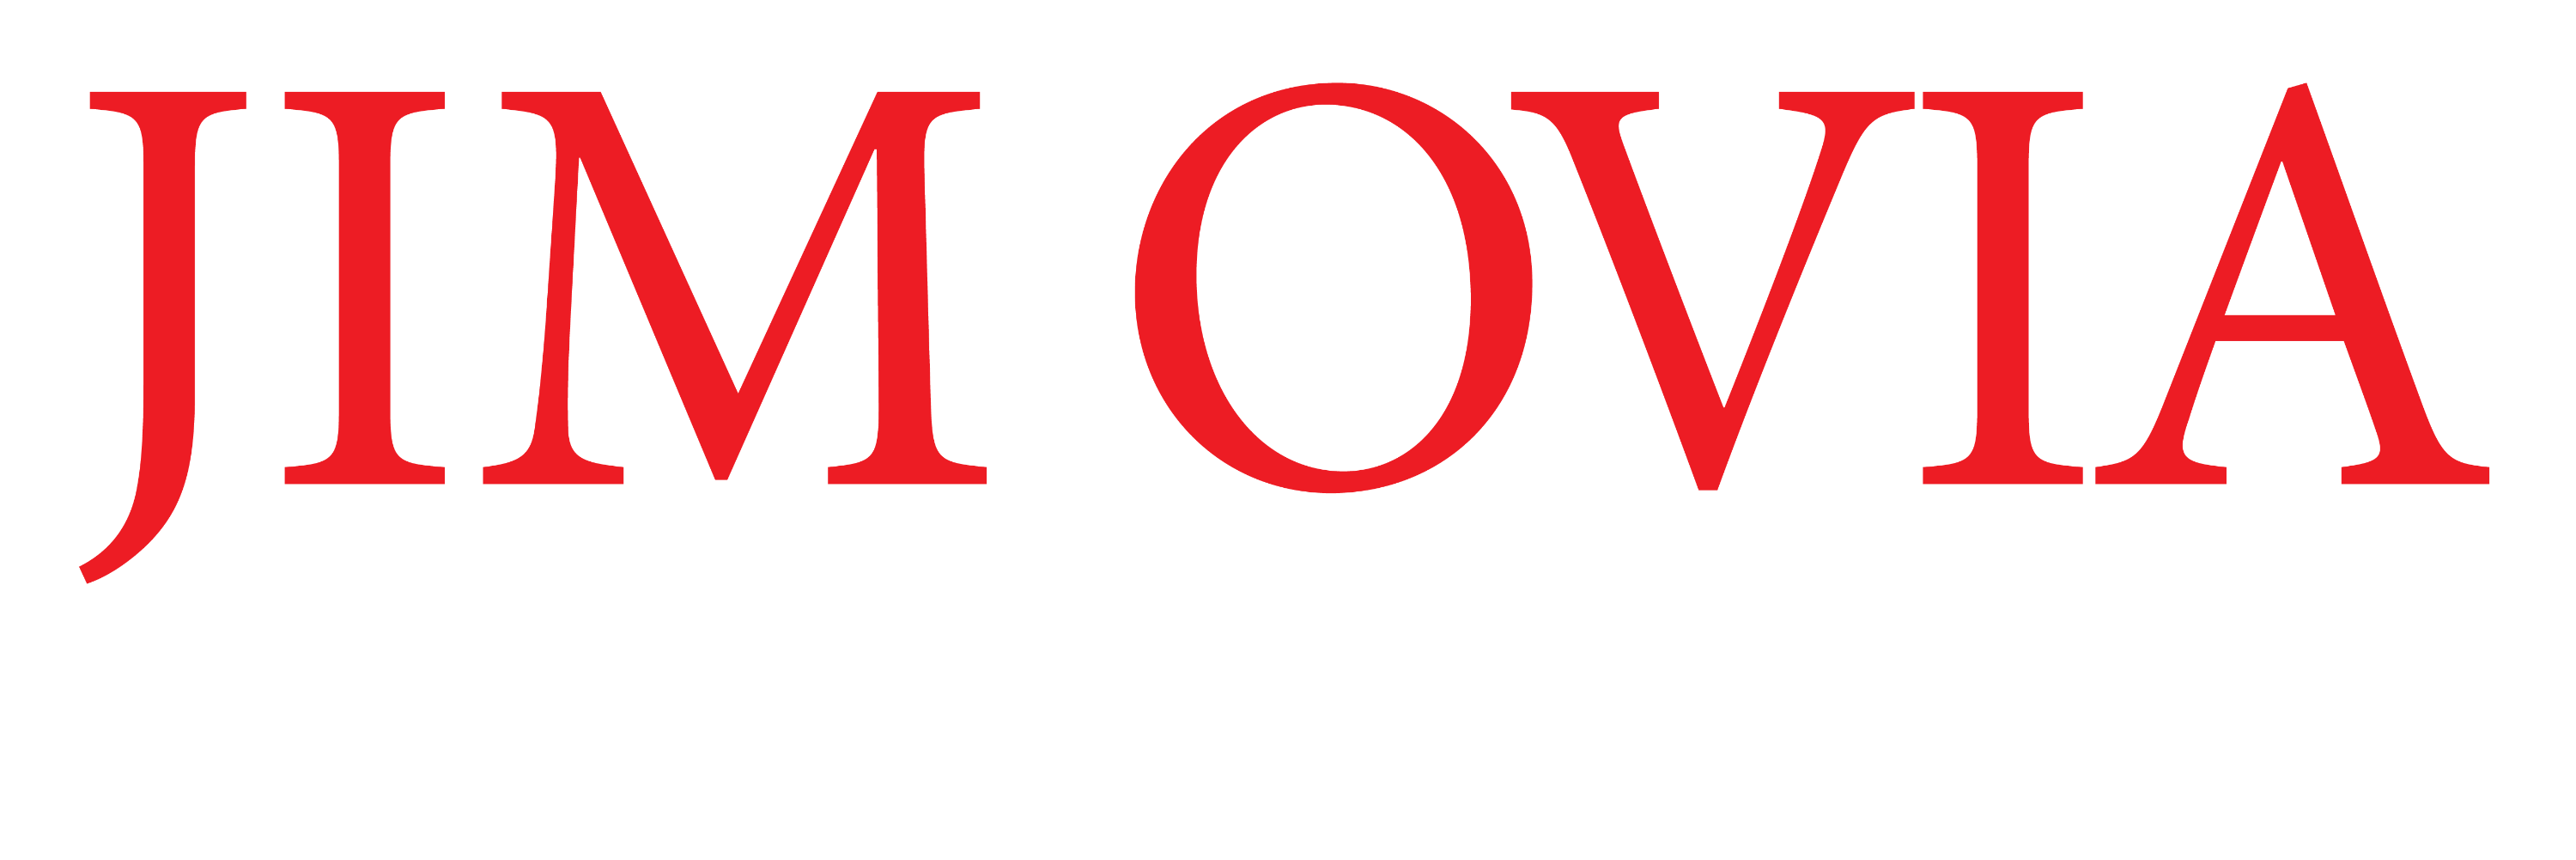 Jim Ovia Foundation Leaders Scholarship in Ghana and Nigeria, 2018-2019